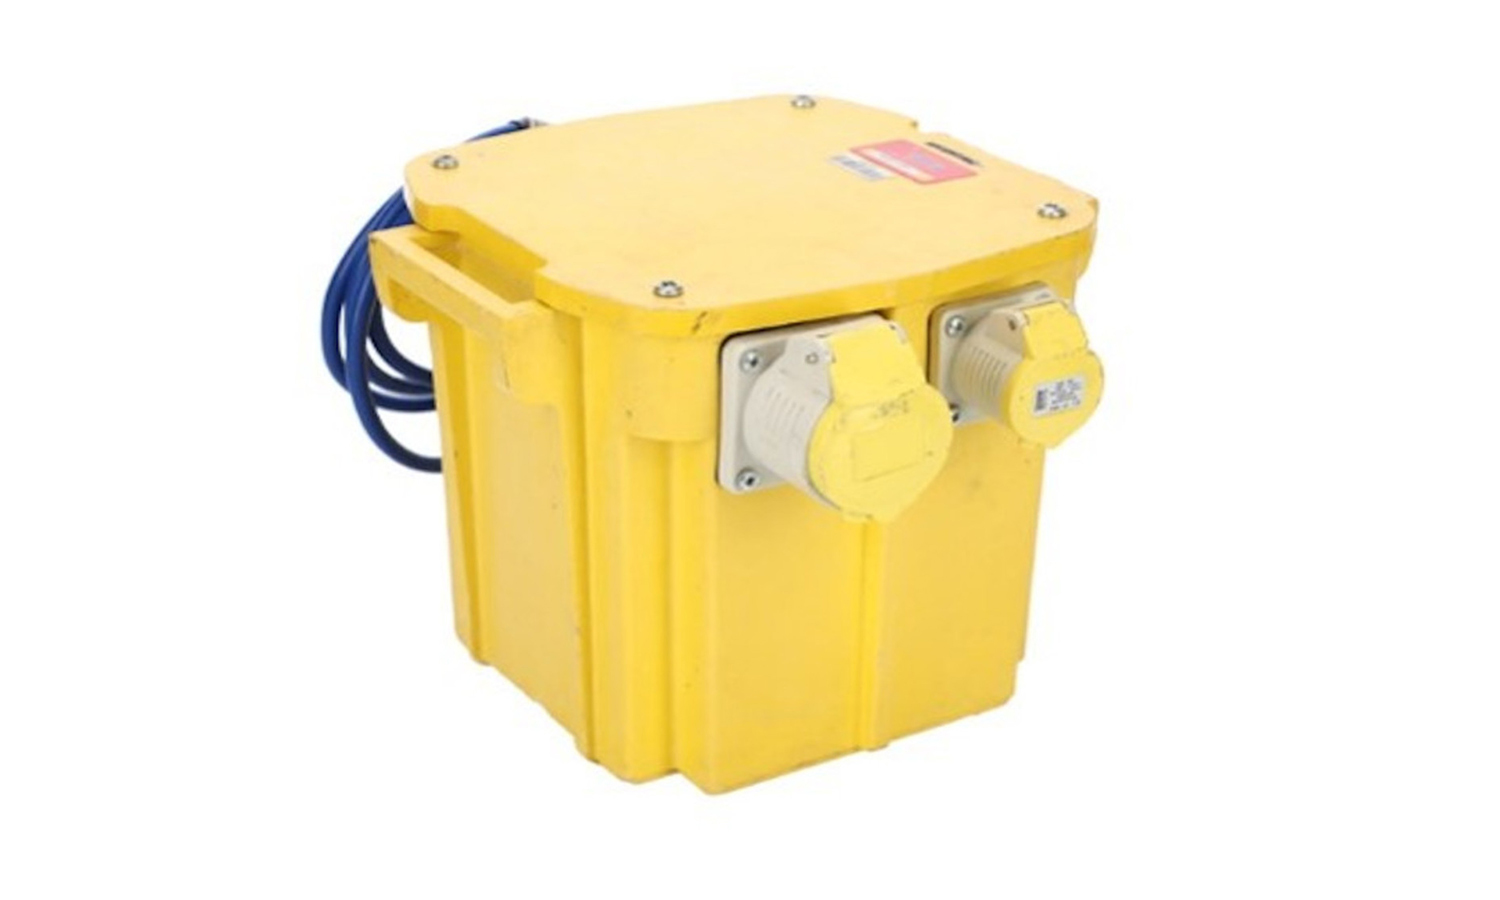 3 kVA Portable Transformer Product Page Image